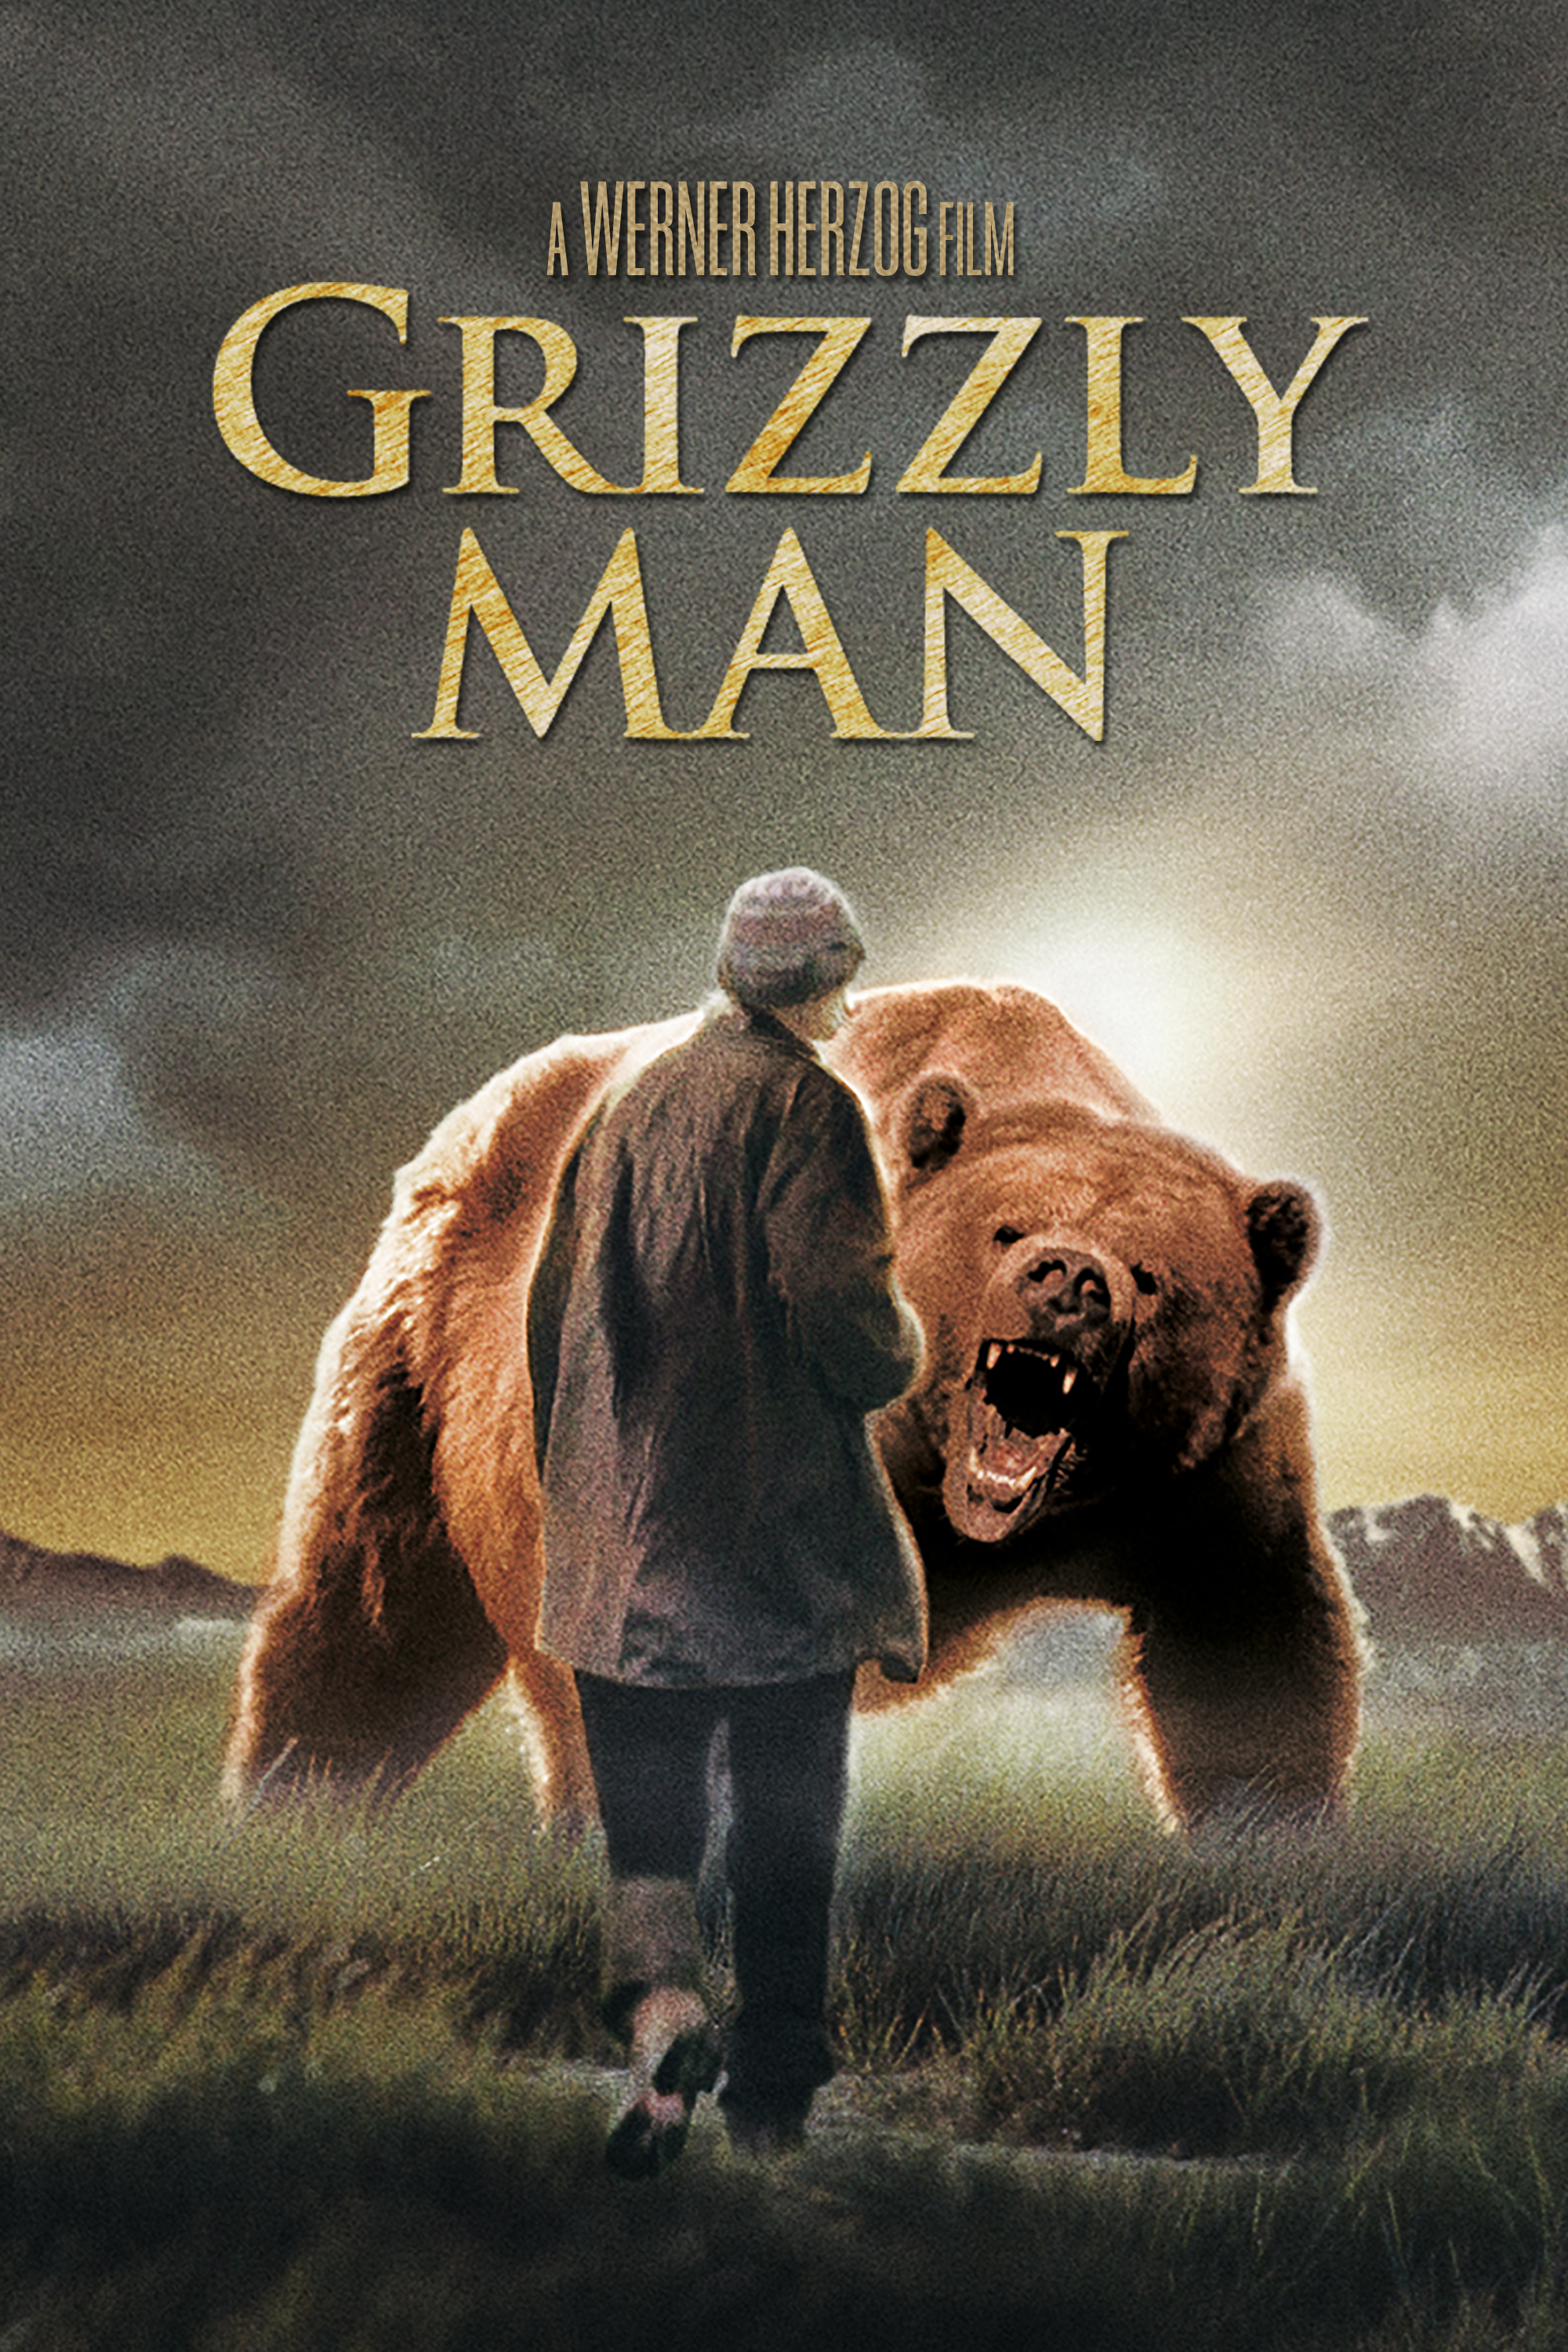 the 'dog man' and grizzly man crossing In this mesmerizing new film, acclaimed director werner herzog explores the life and death of amateur grizzly bear expert and wildlife preservationist timothy treadwell, who lived unarmed among grizzlies for 13 summers.